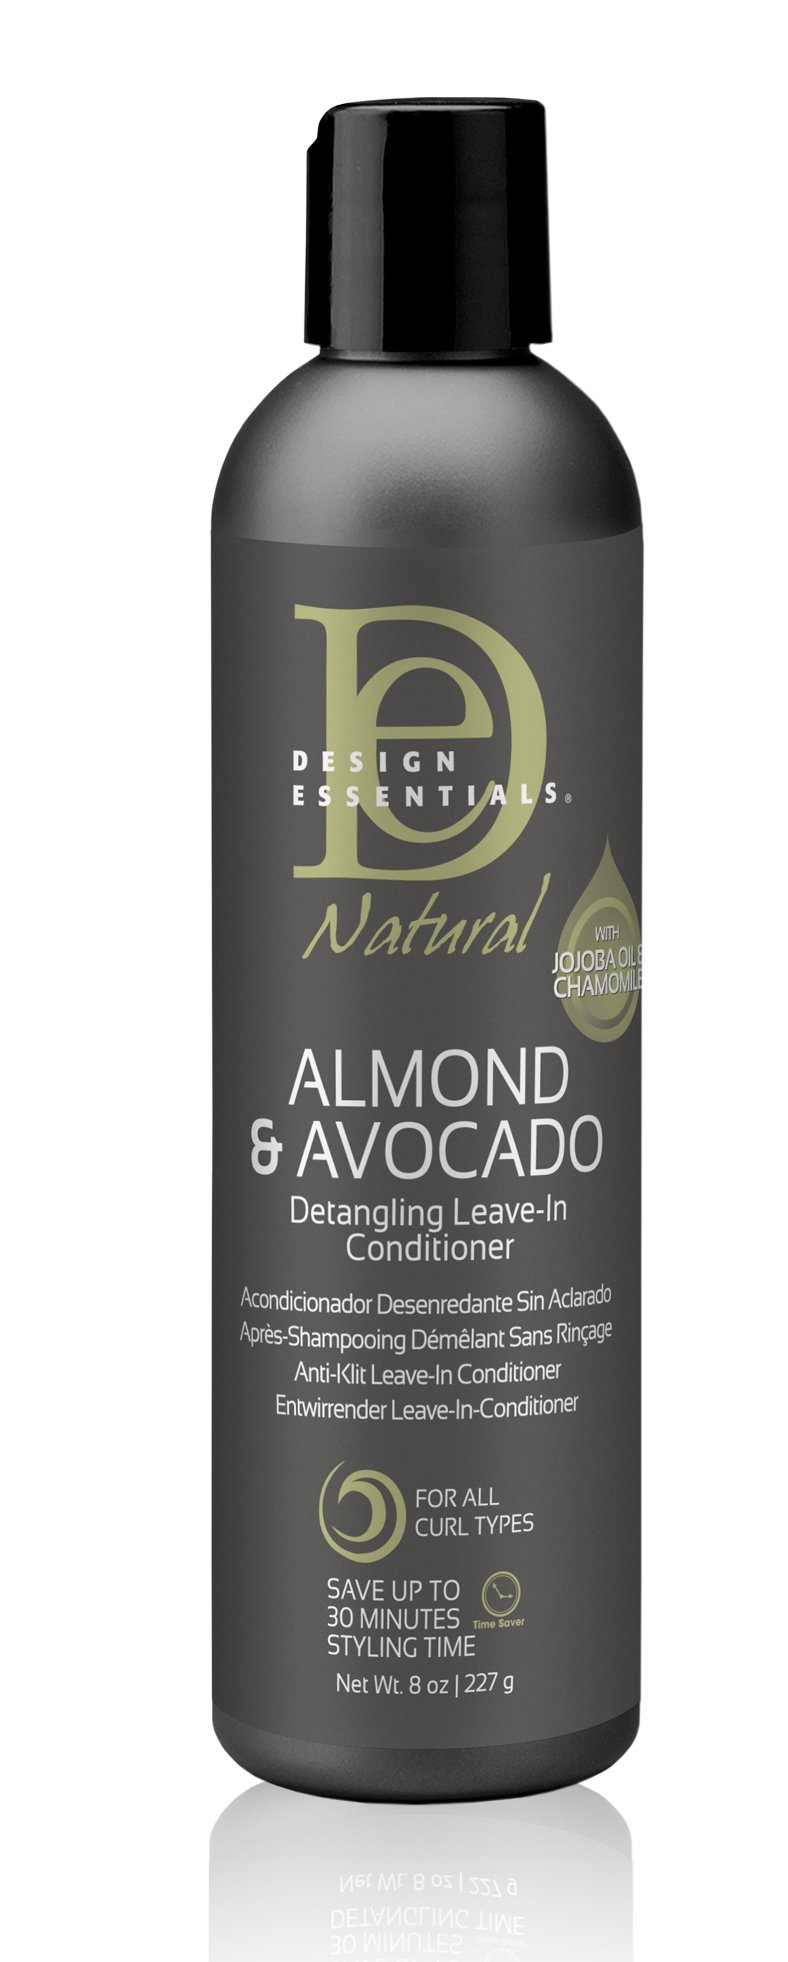 Design Essentials Natural Instant Detangling Leave-In Conditioner for Healthy, Moisturized, Luminous Frizz-Free Hair-Almond & Avocado Collection, 8oz.